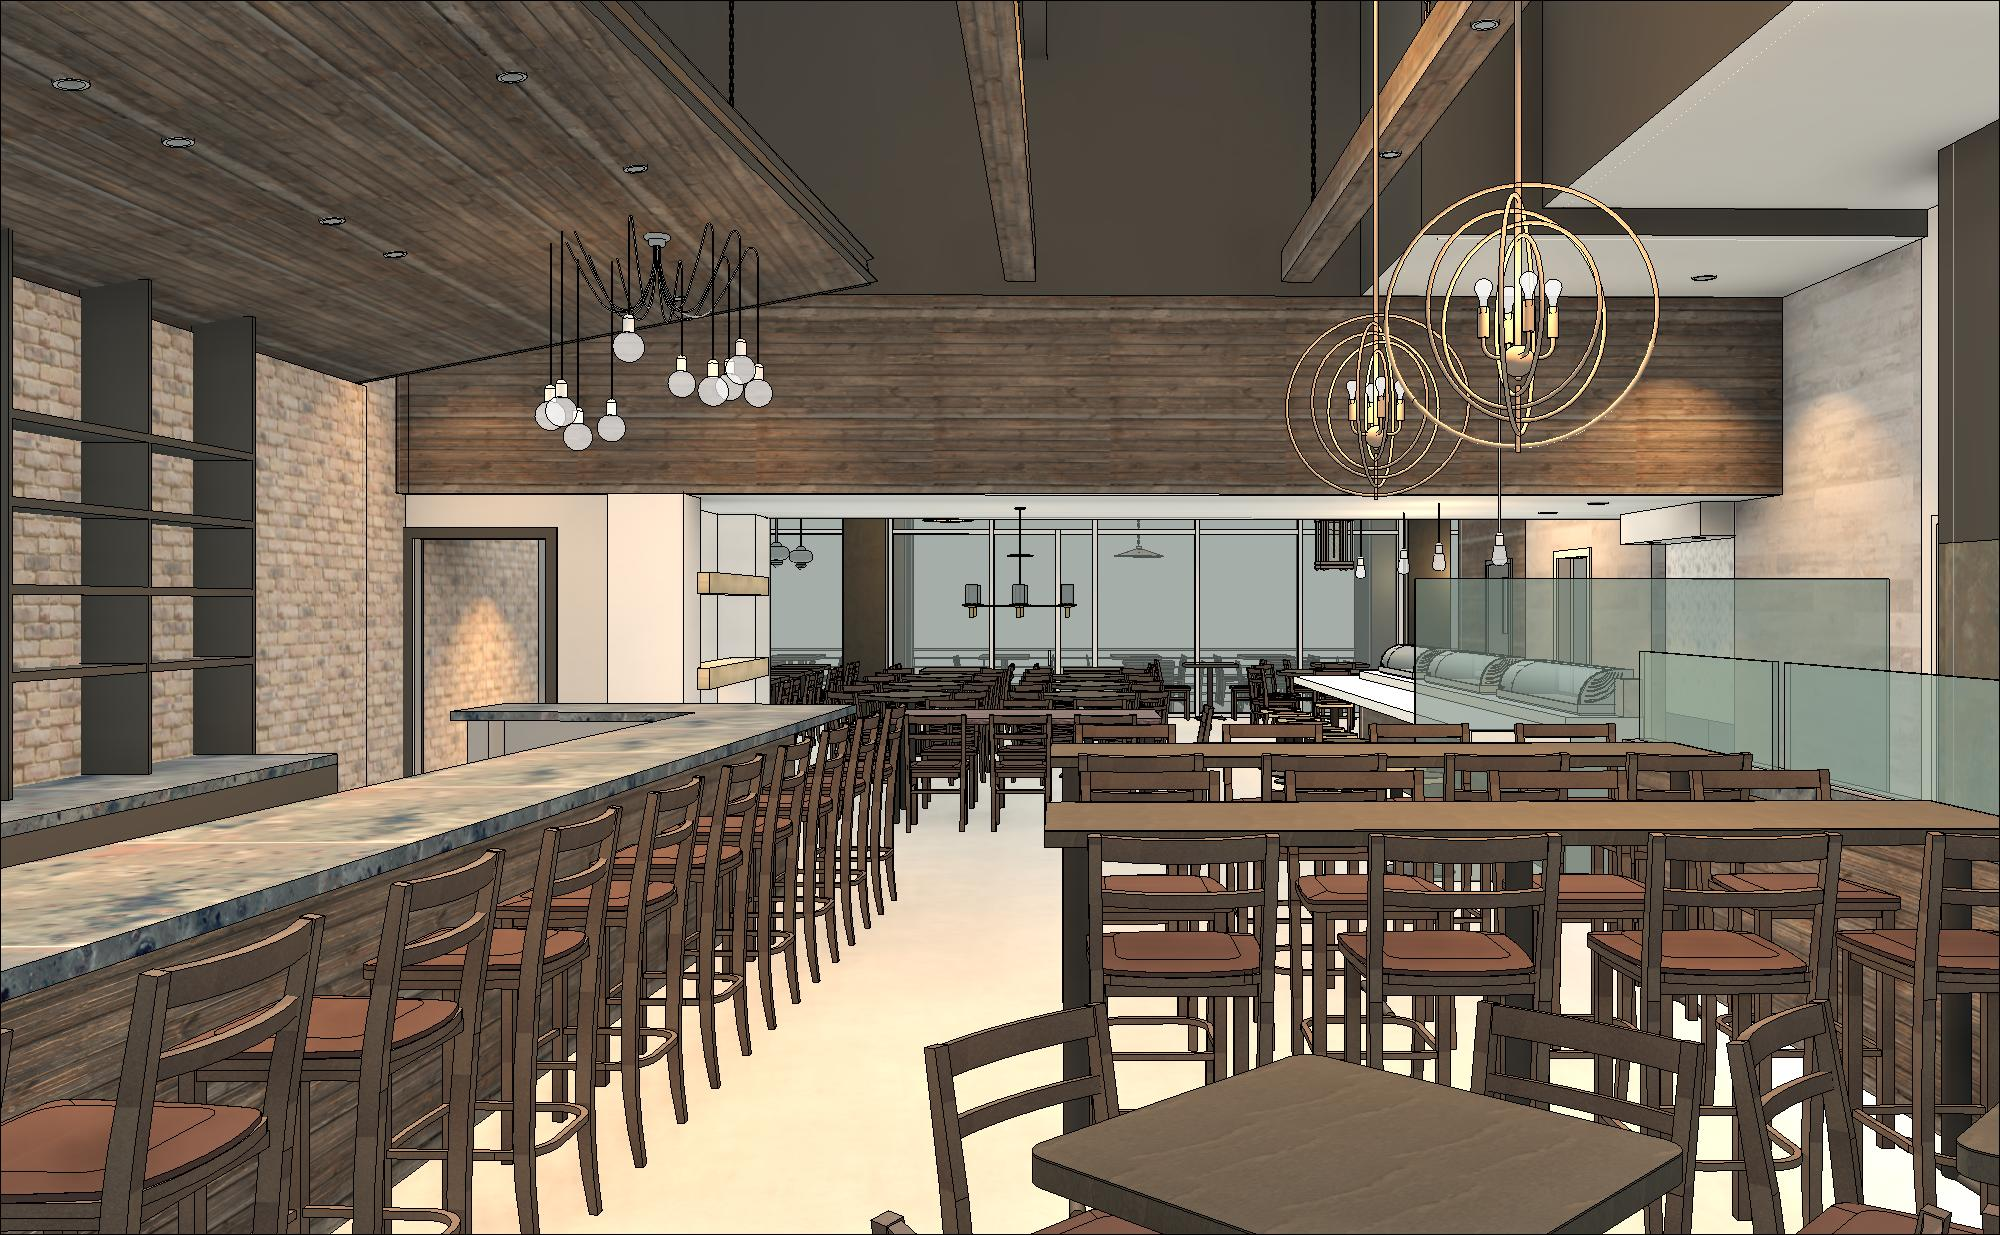 Restaurant interior revit model with custom lighting